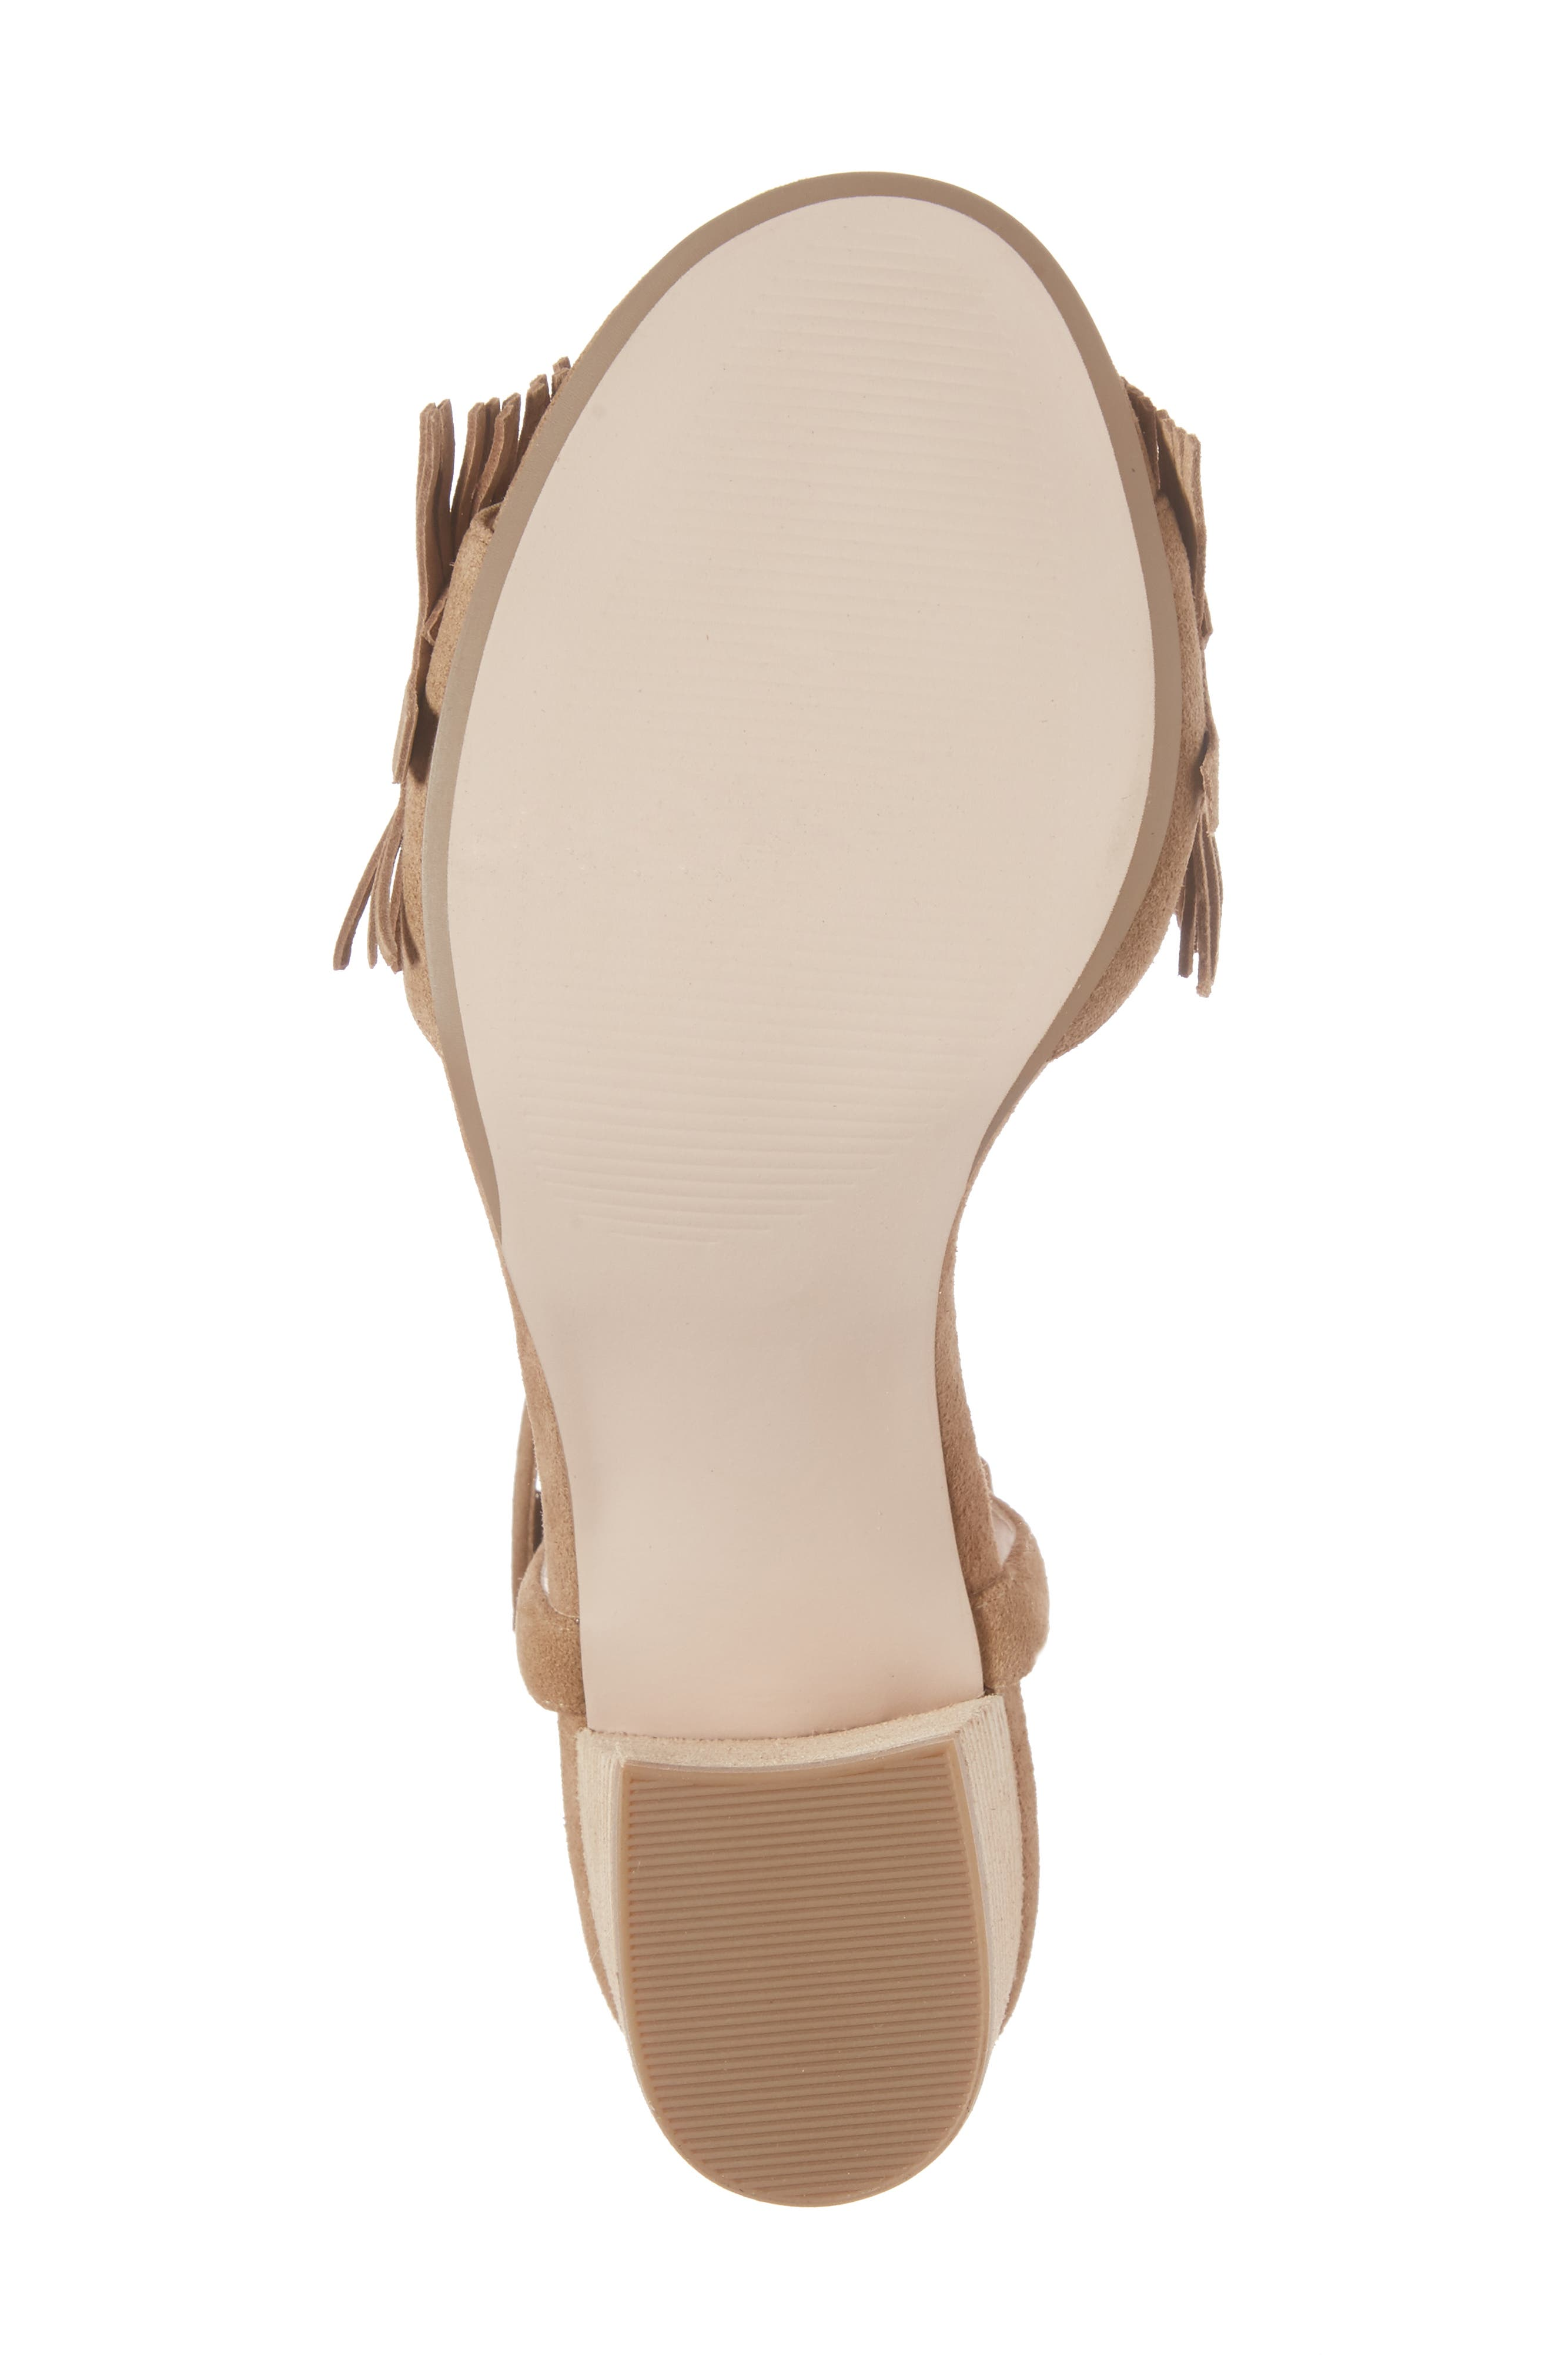 Sepia Fringe Sandal,                             Alternate thumbnail 6, color,                             Coffee Suede